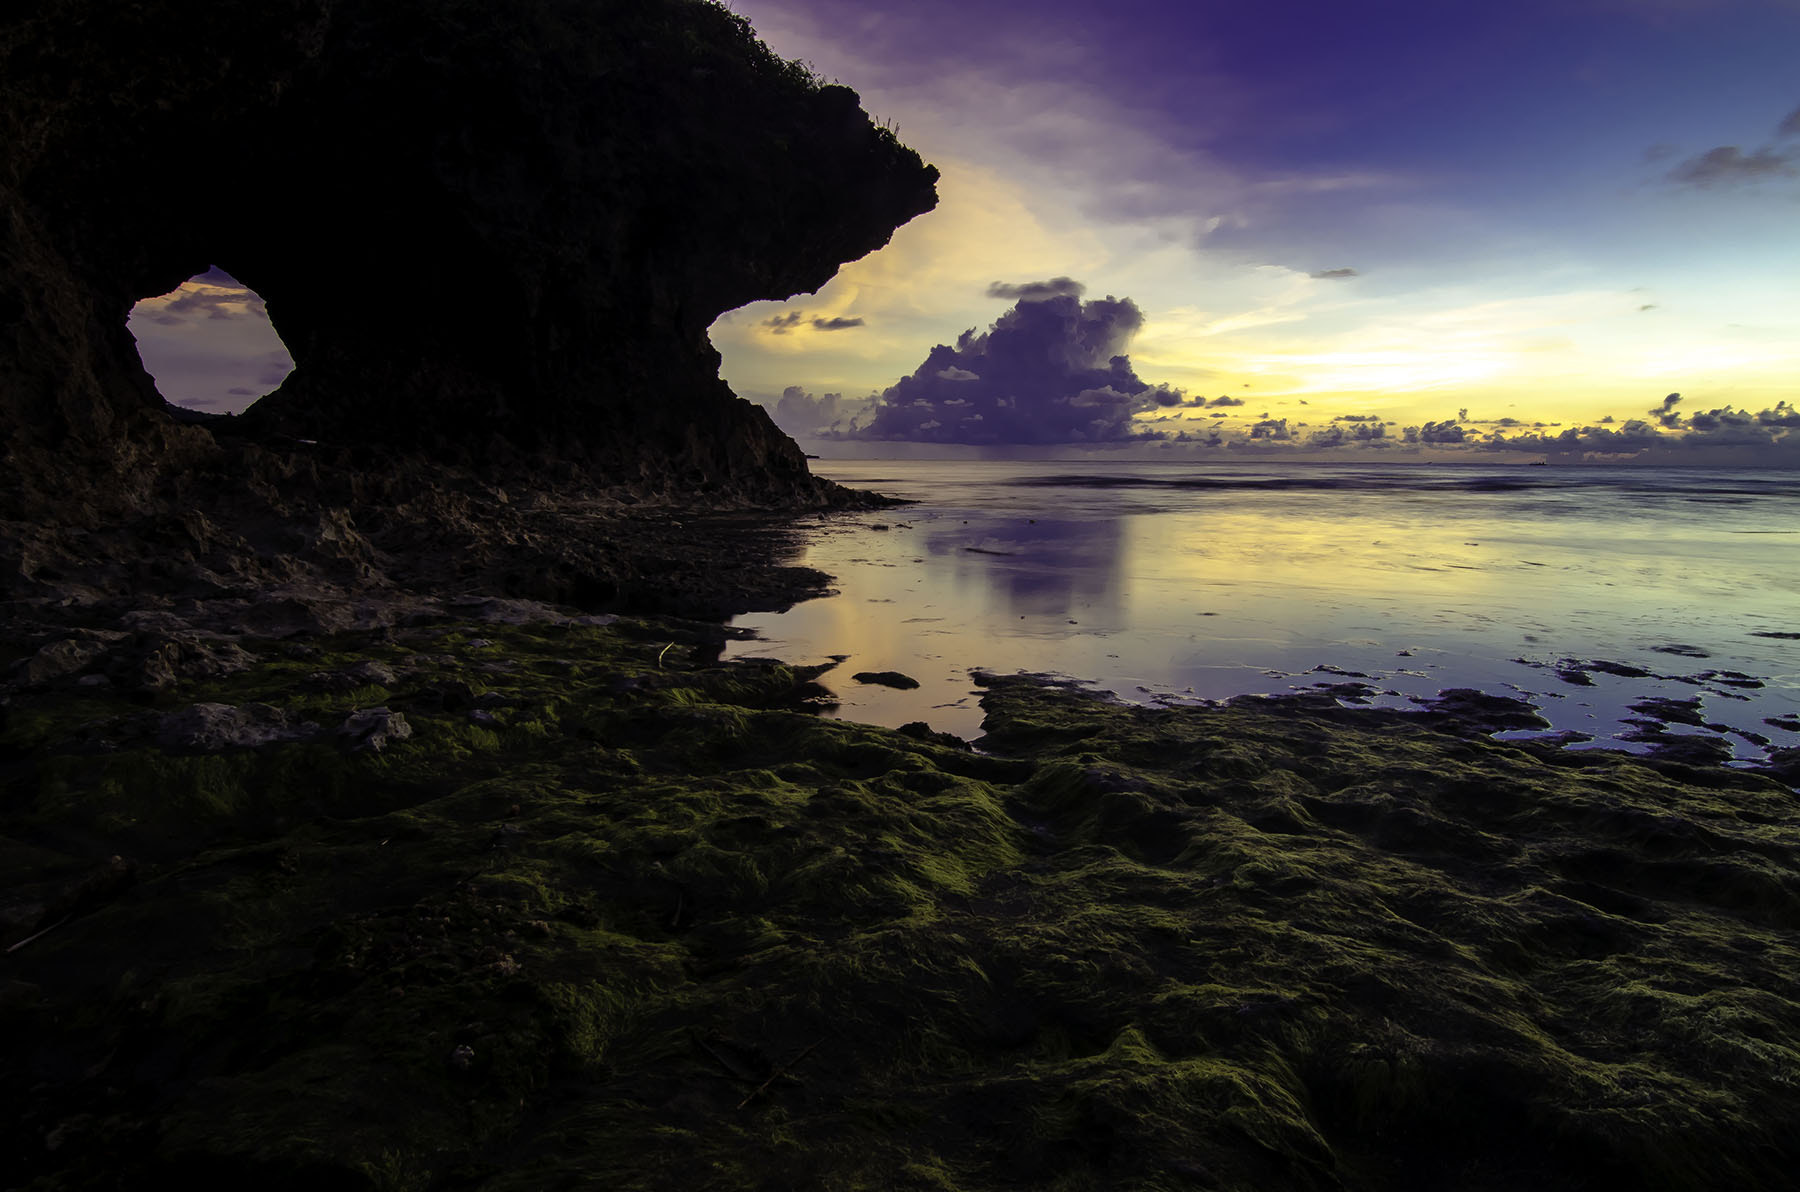 Photograph Built Upon These Rocks by Allan Cerdan on 500px